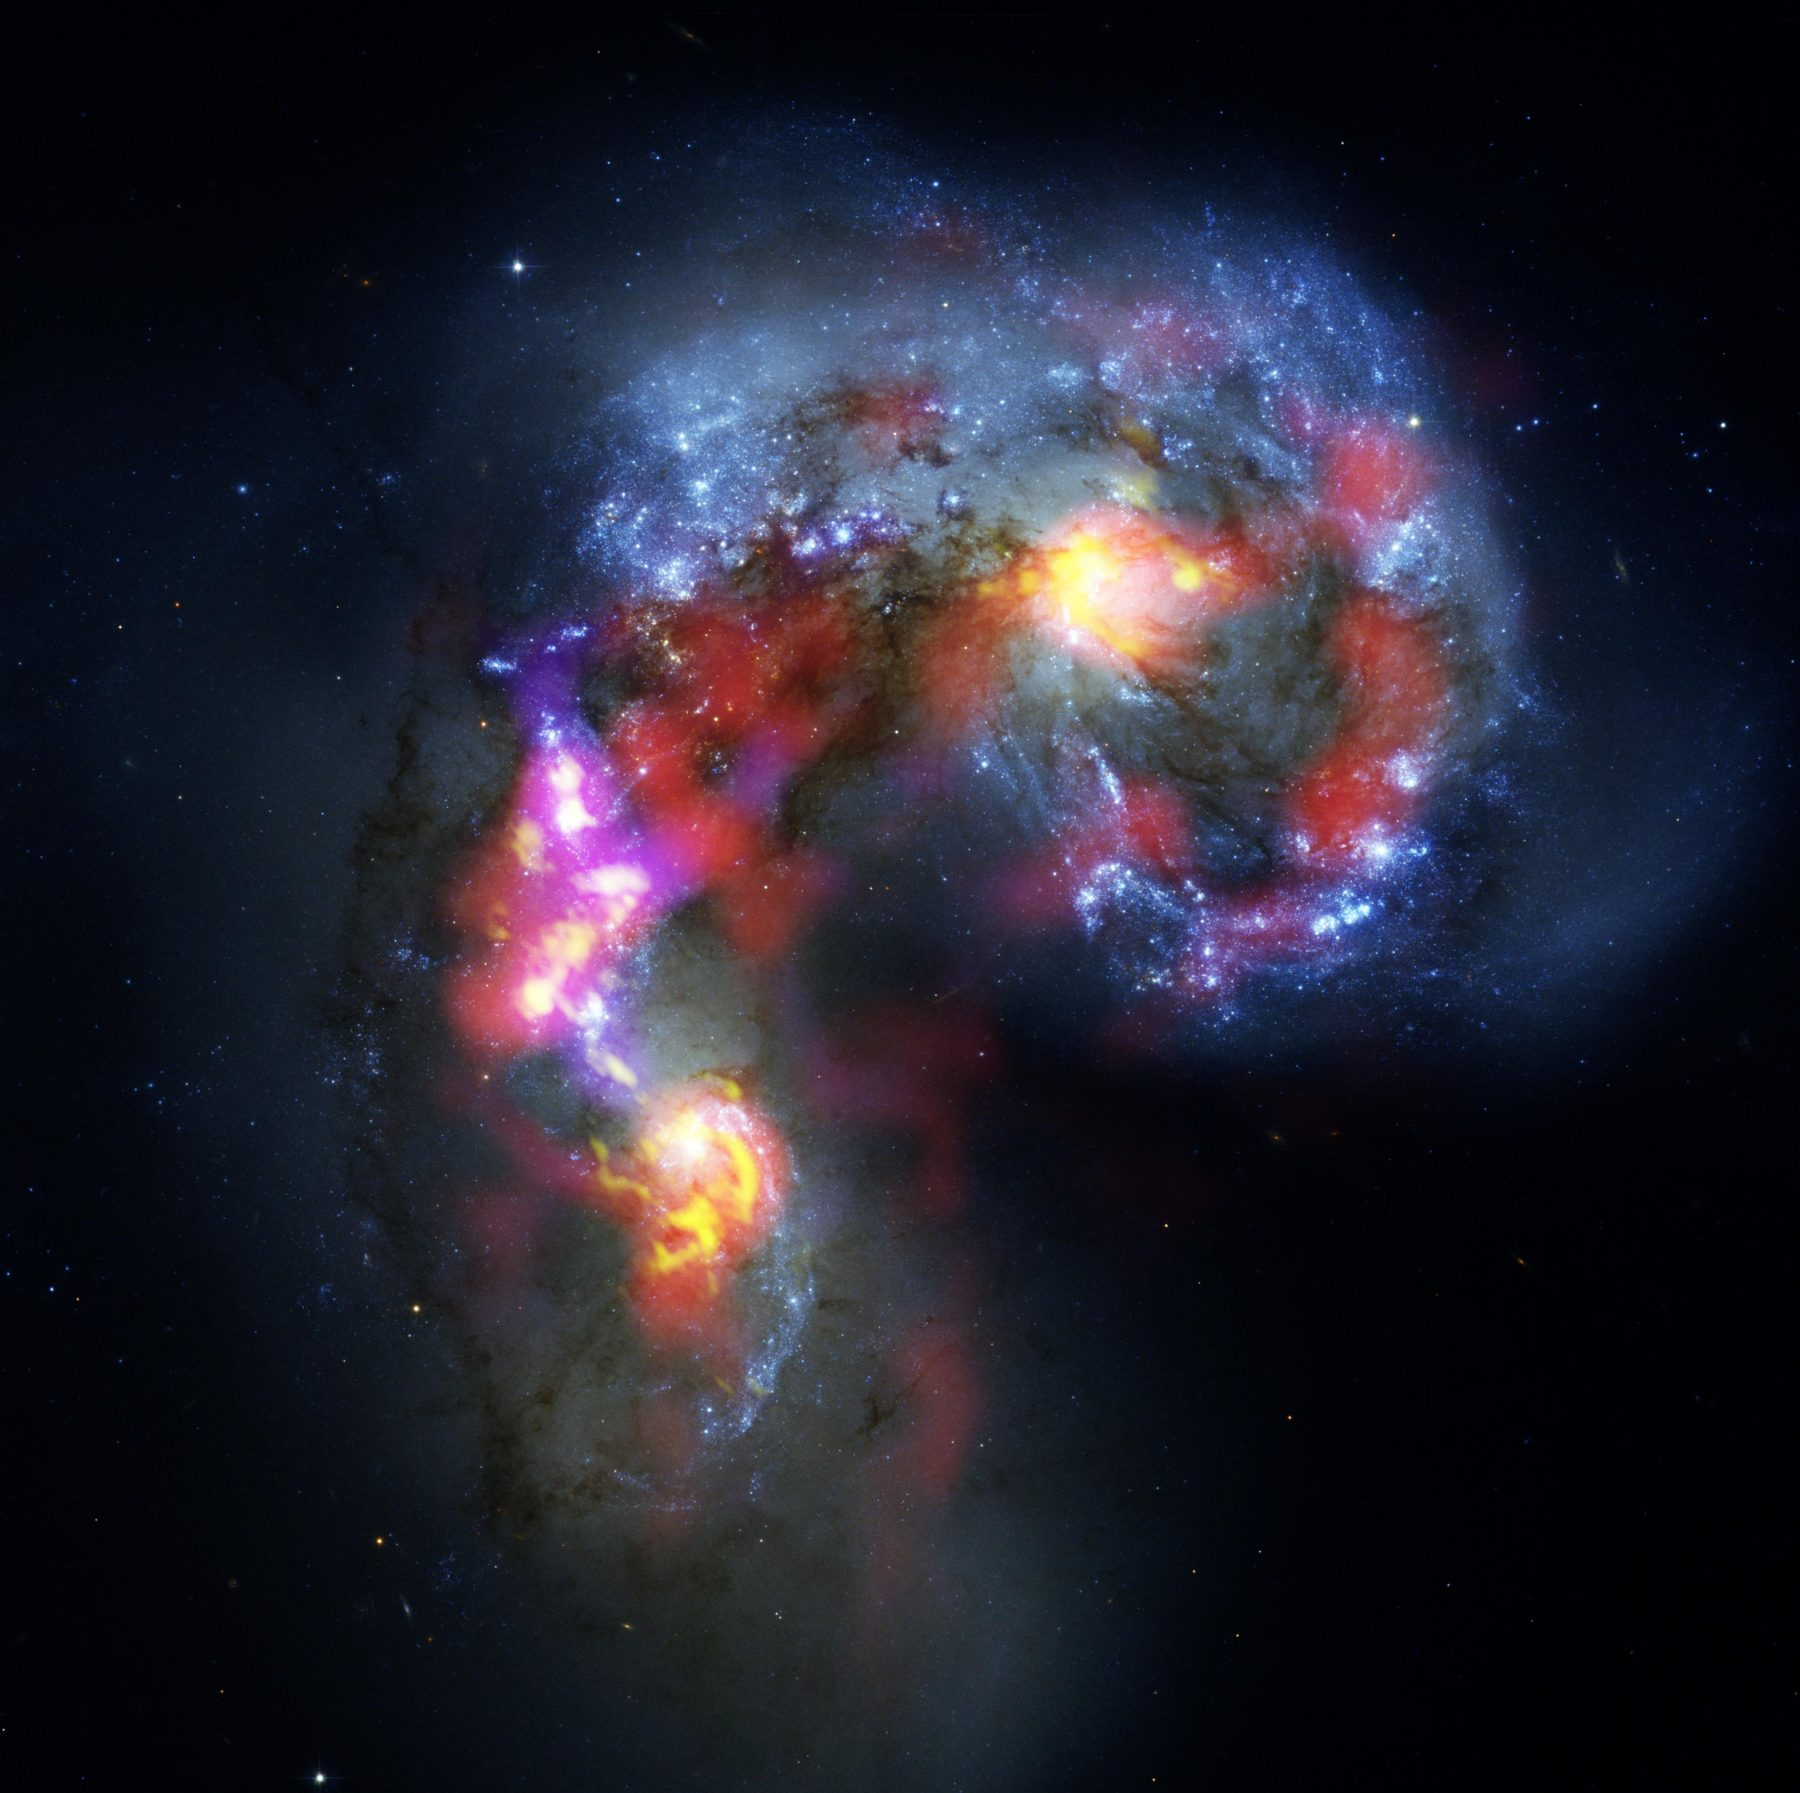 The Antennae Galaxies observed with ALMA